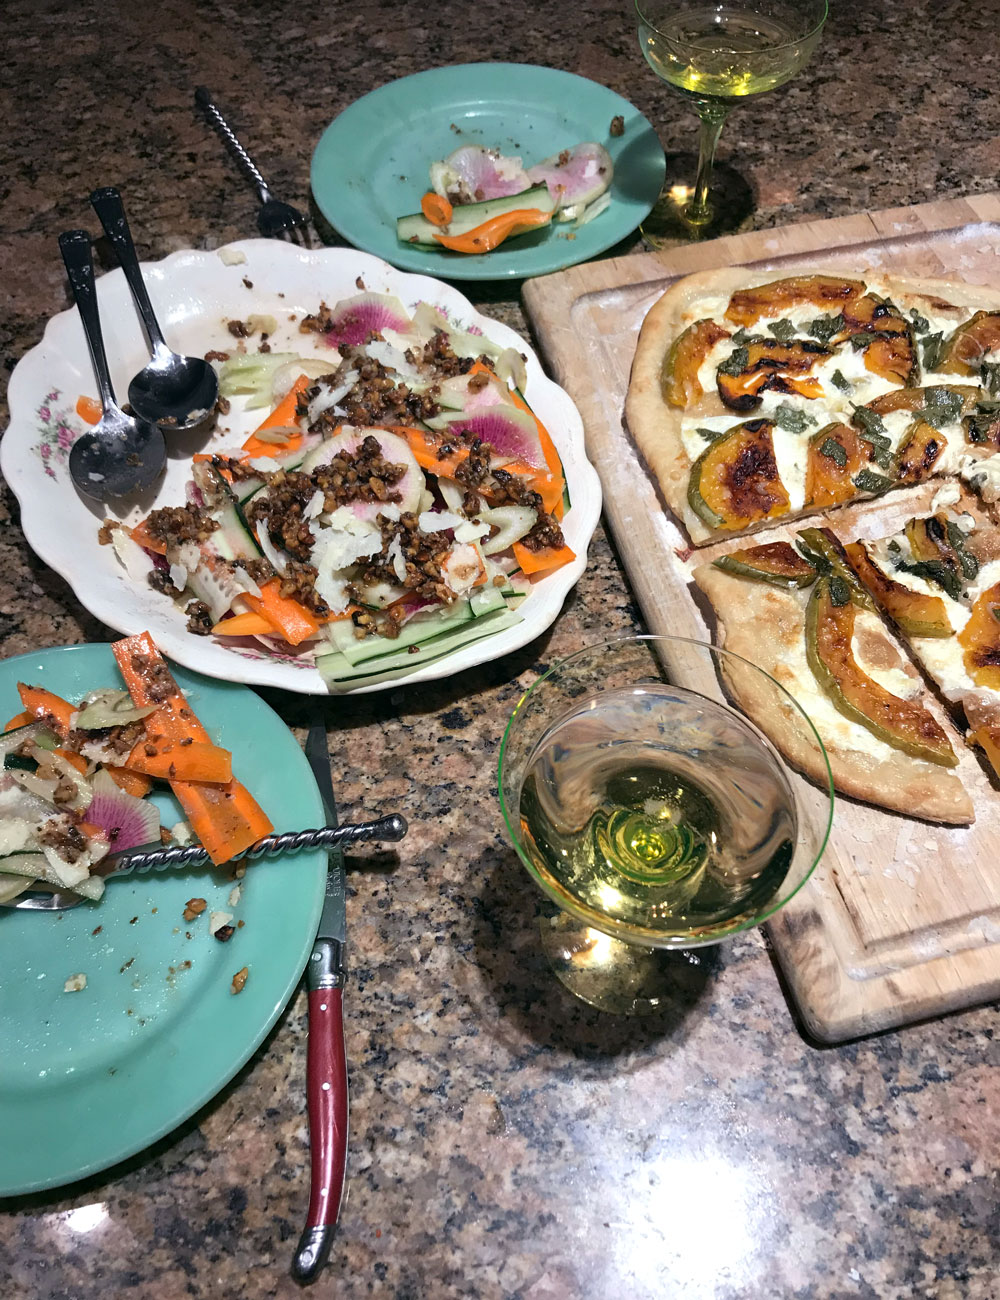 early-spring-salad-and-pizza-recipet.jpg